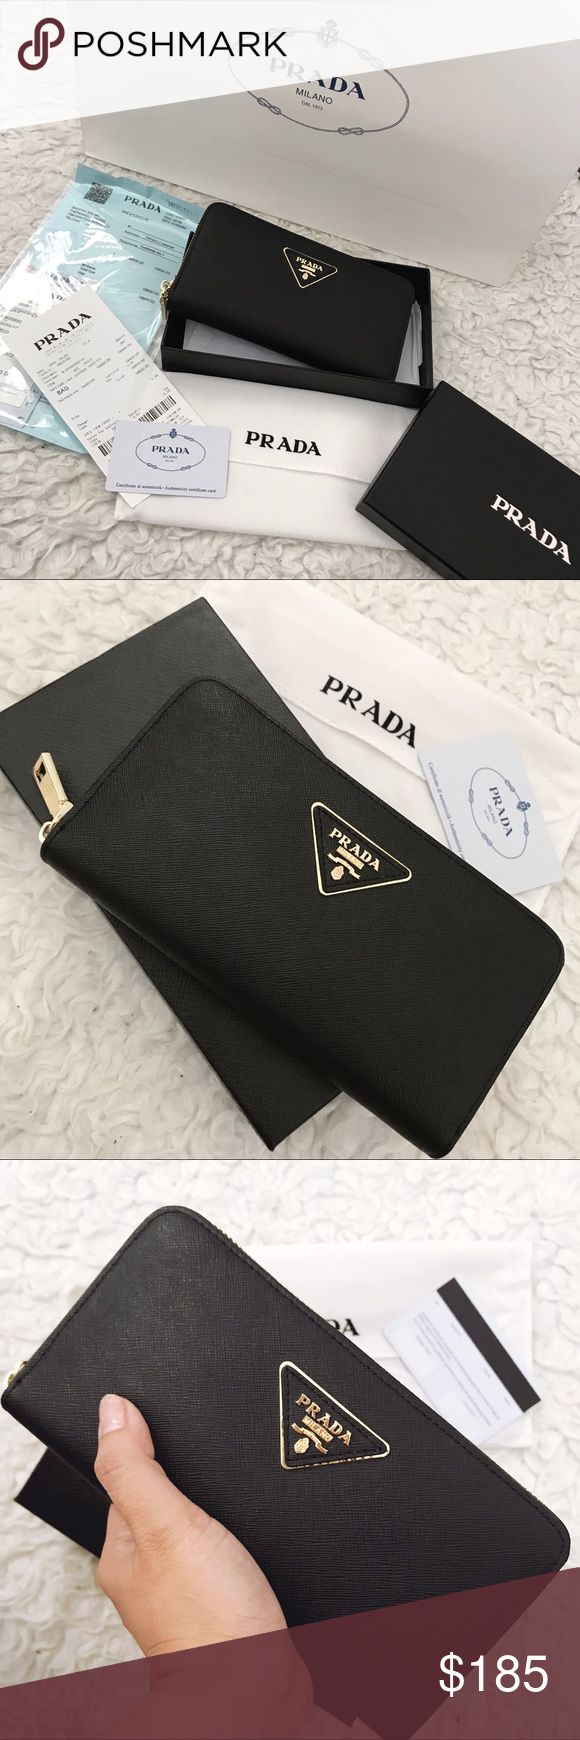 Prada Saffiano Wallet Price reflects A u t h en ti ci t y.  Bought this at HK. Brand new comes with Everything in the picture I will ship it together with Receipt, card, dust bag, box, paper bag.  Pls make an offer using offer button only. Thank you. I'll ship it right away, after payment. received it in 2-3 working days. Prada Bags Wallets